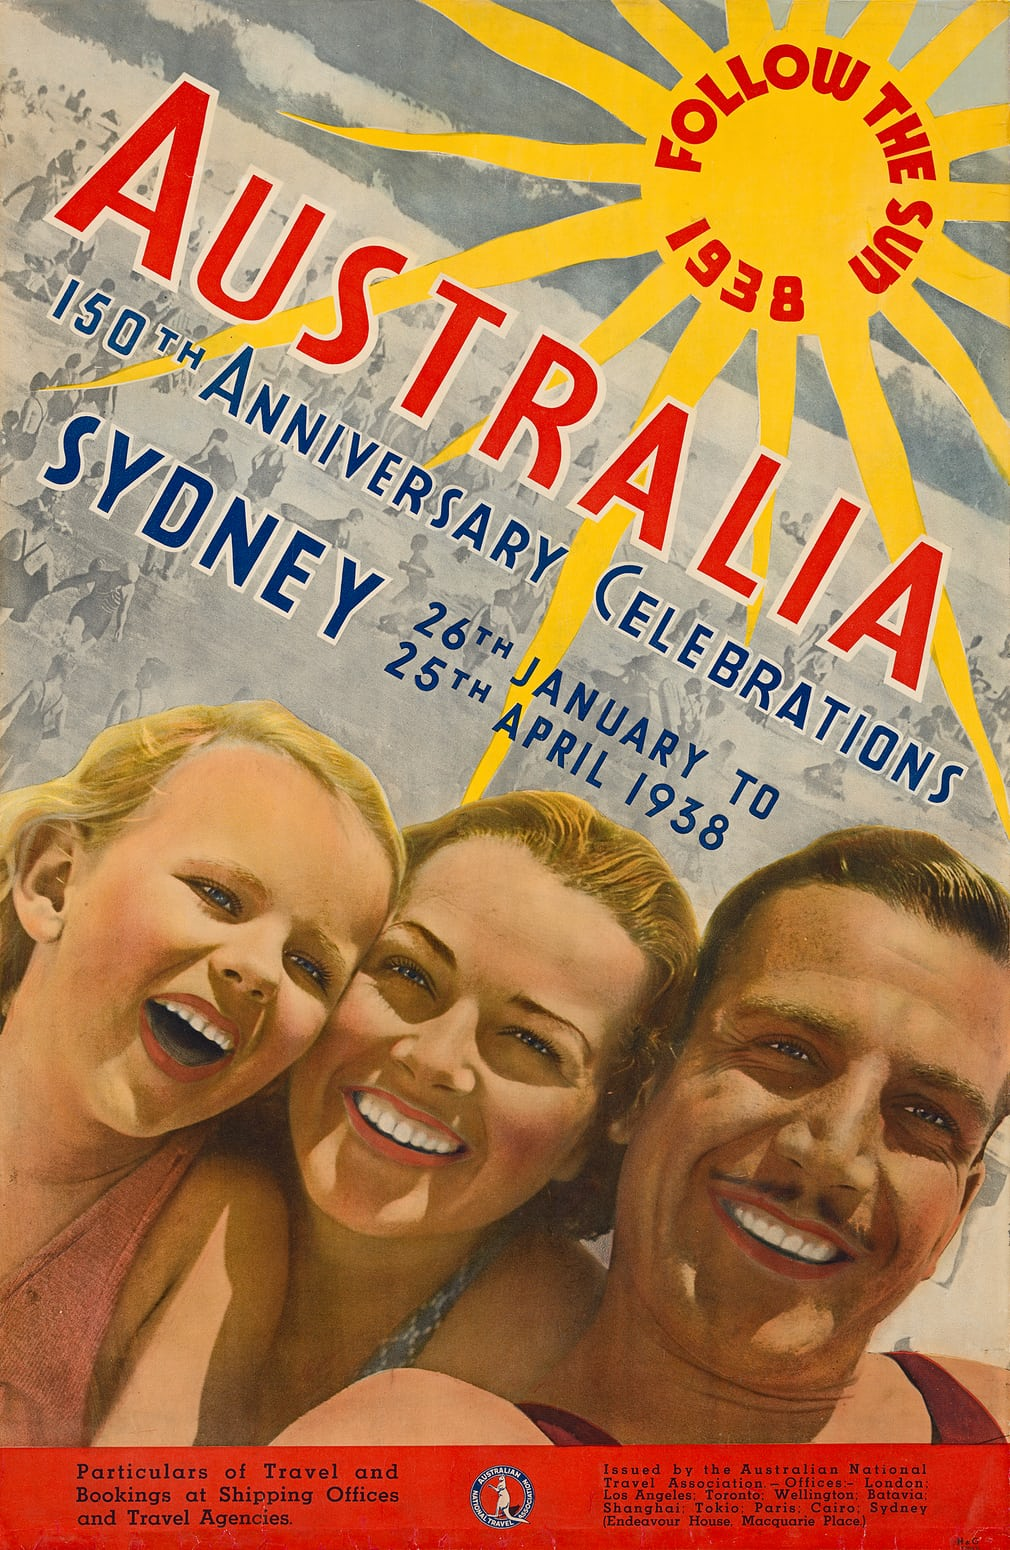 The Dosseroo – 1